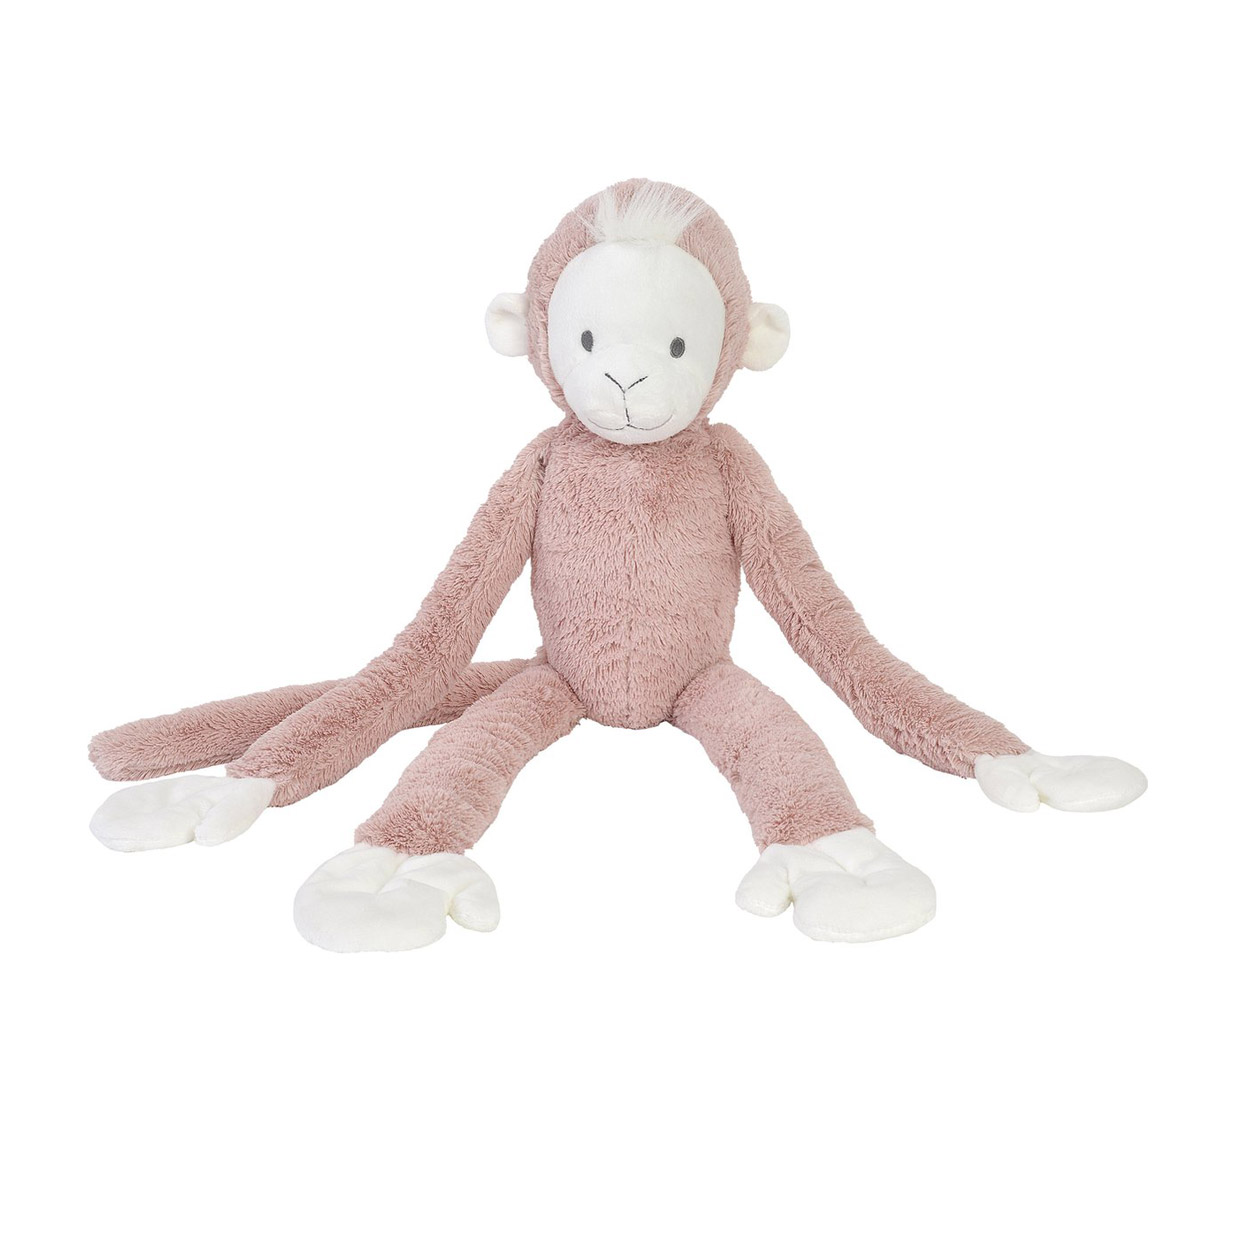 Peach Hanging Monkey